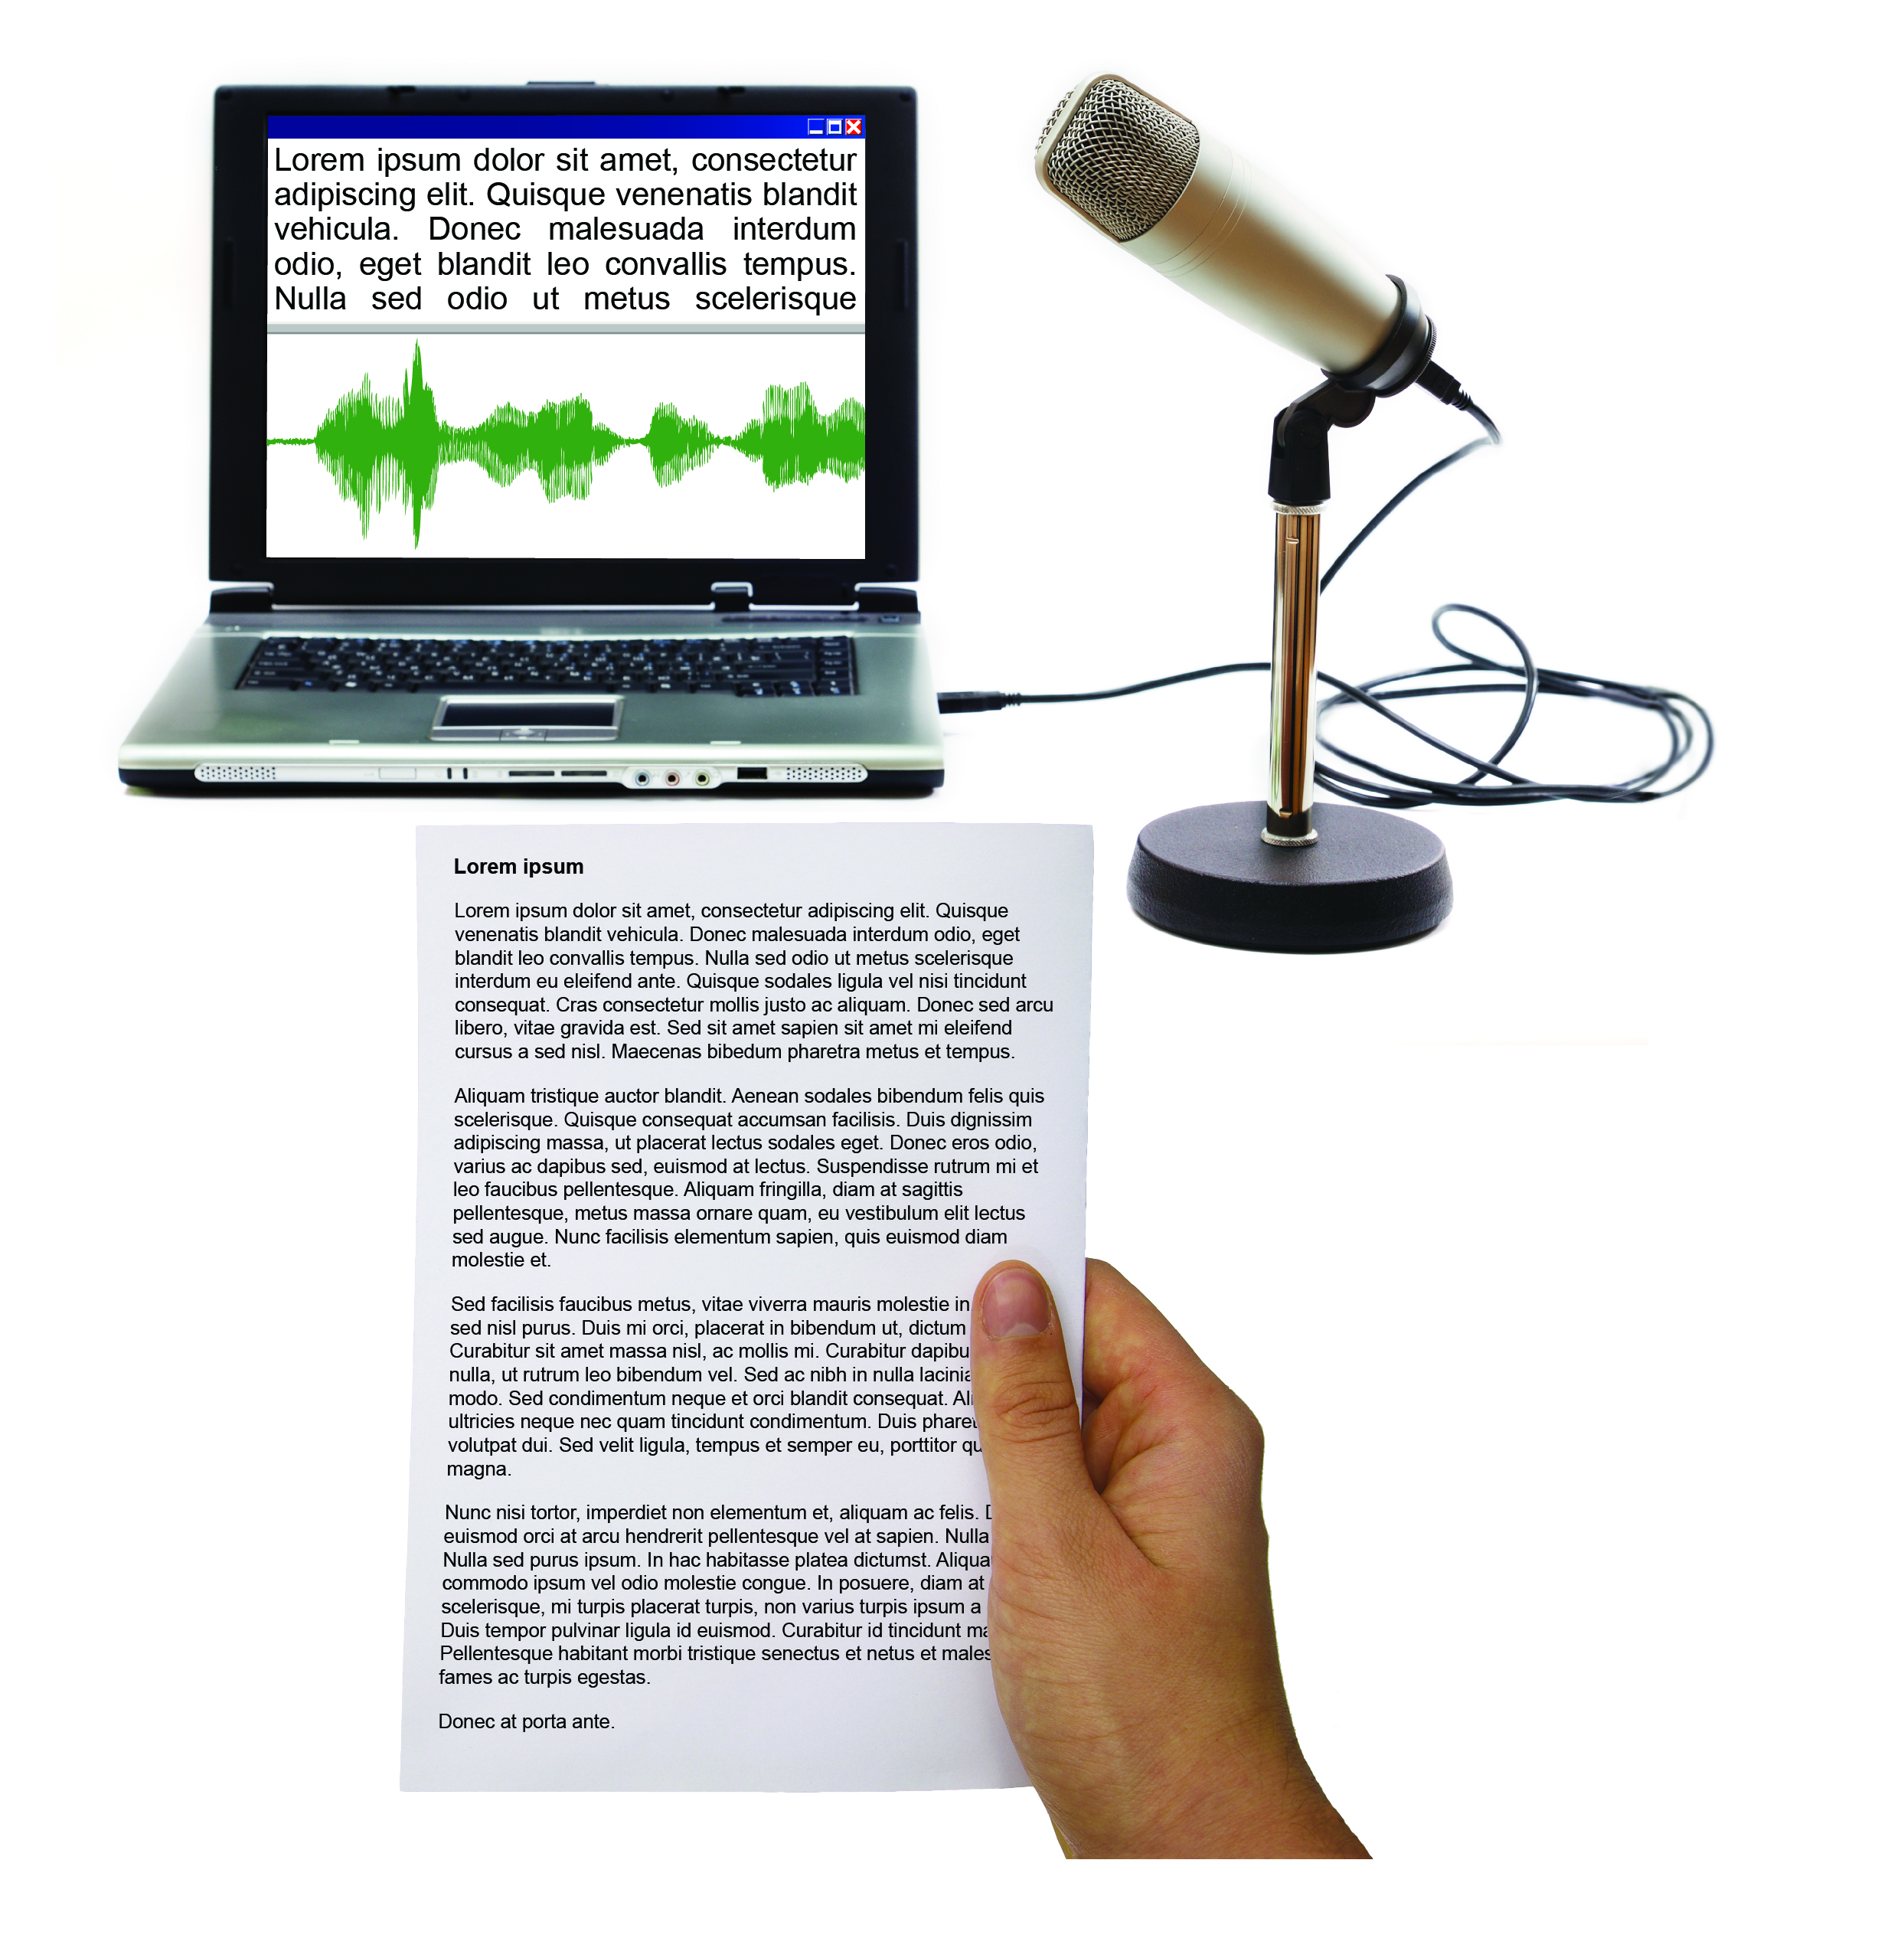 Dolphin Publisher with laptop screen, document and microphone